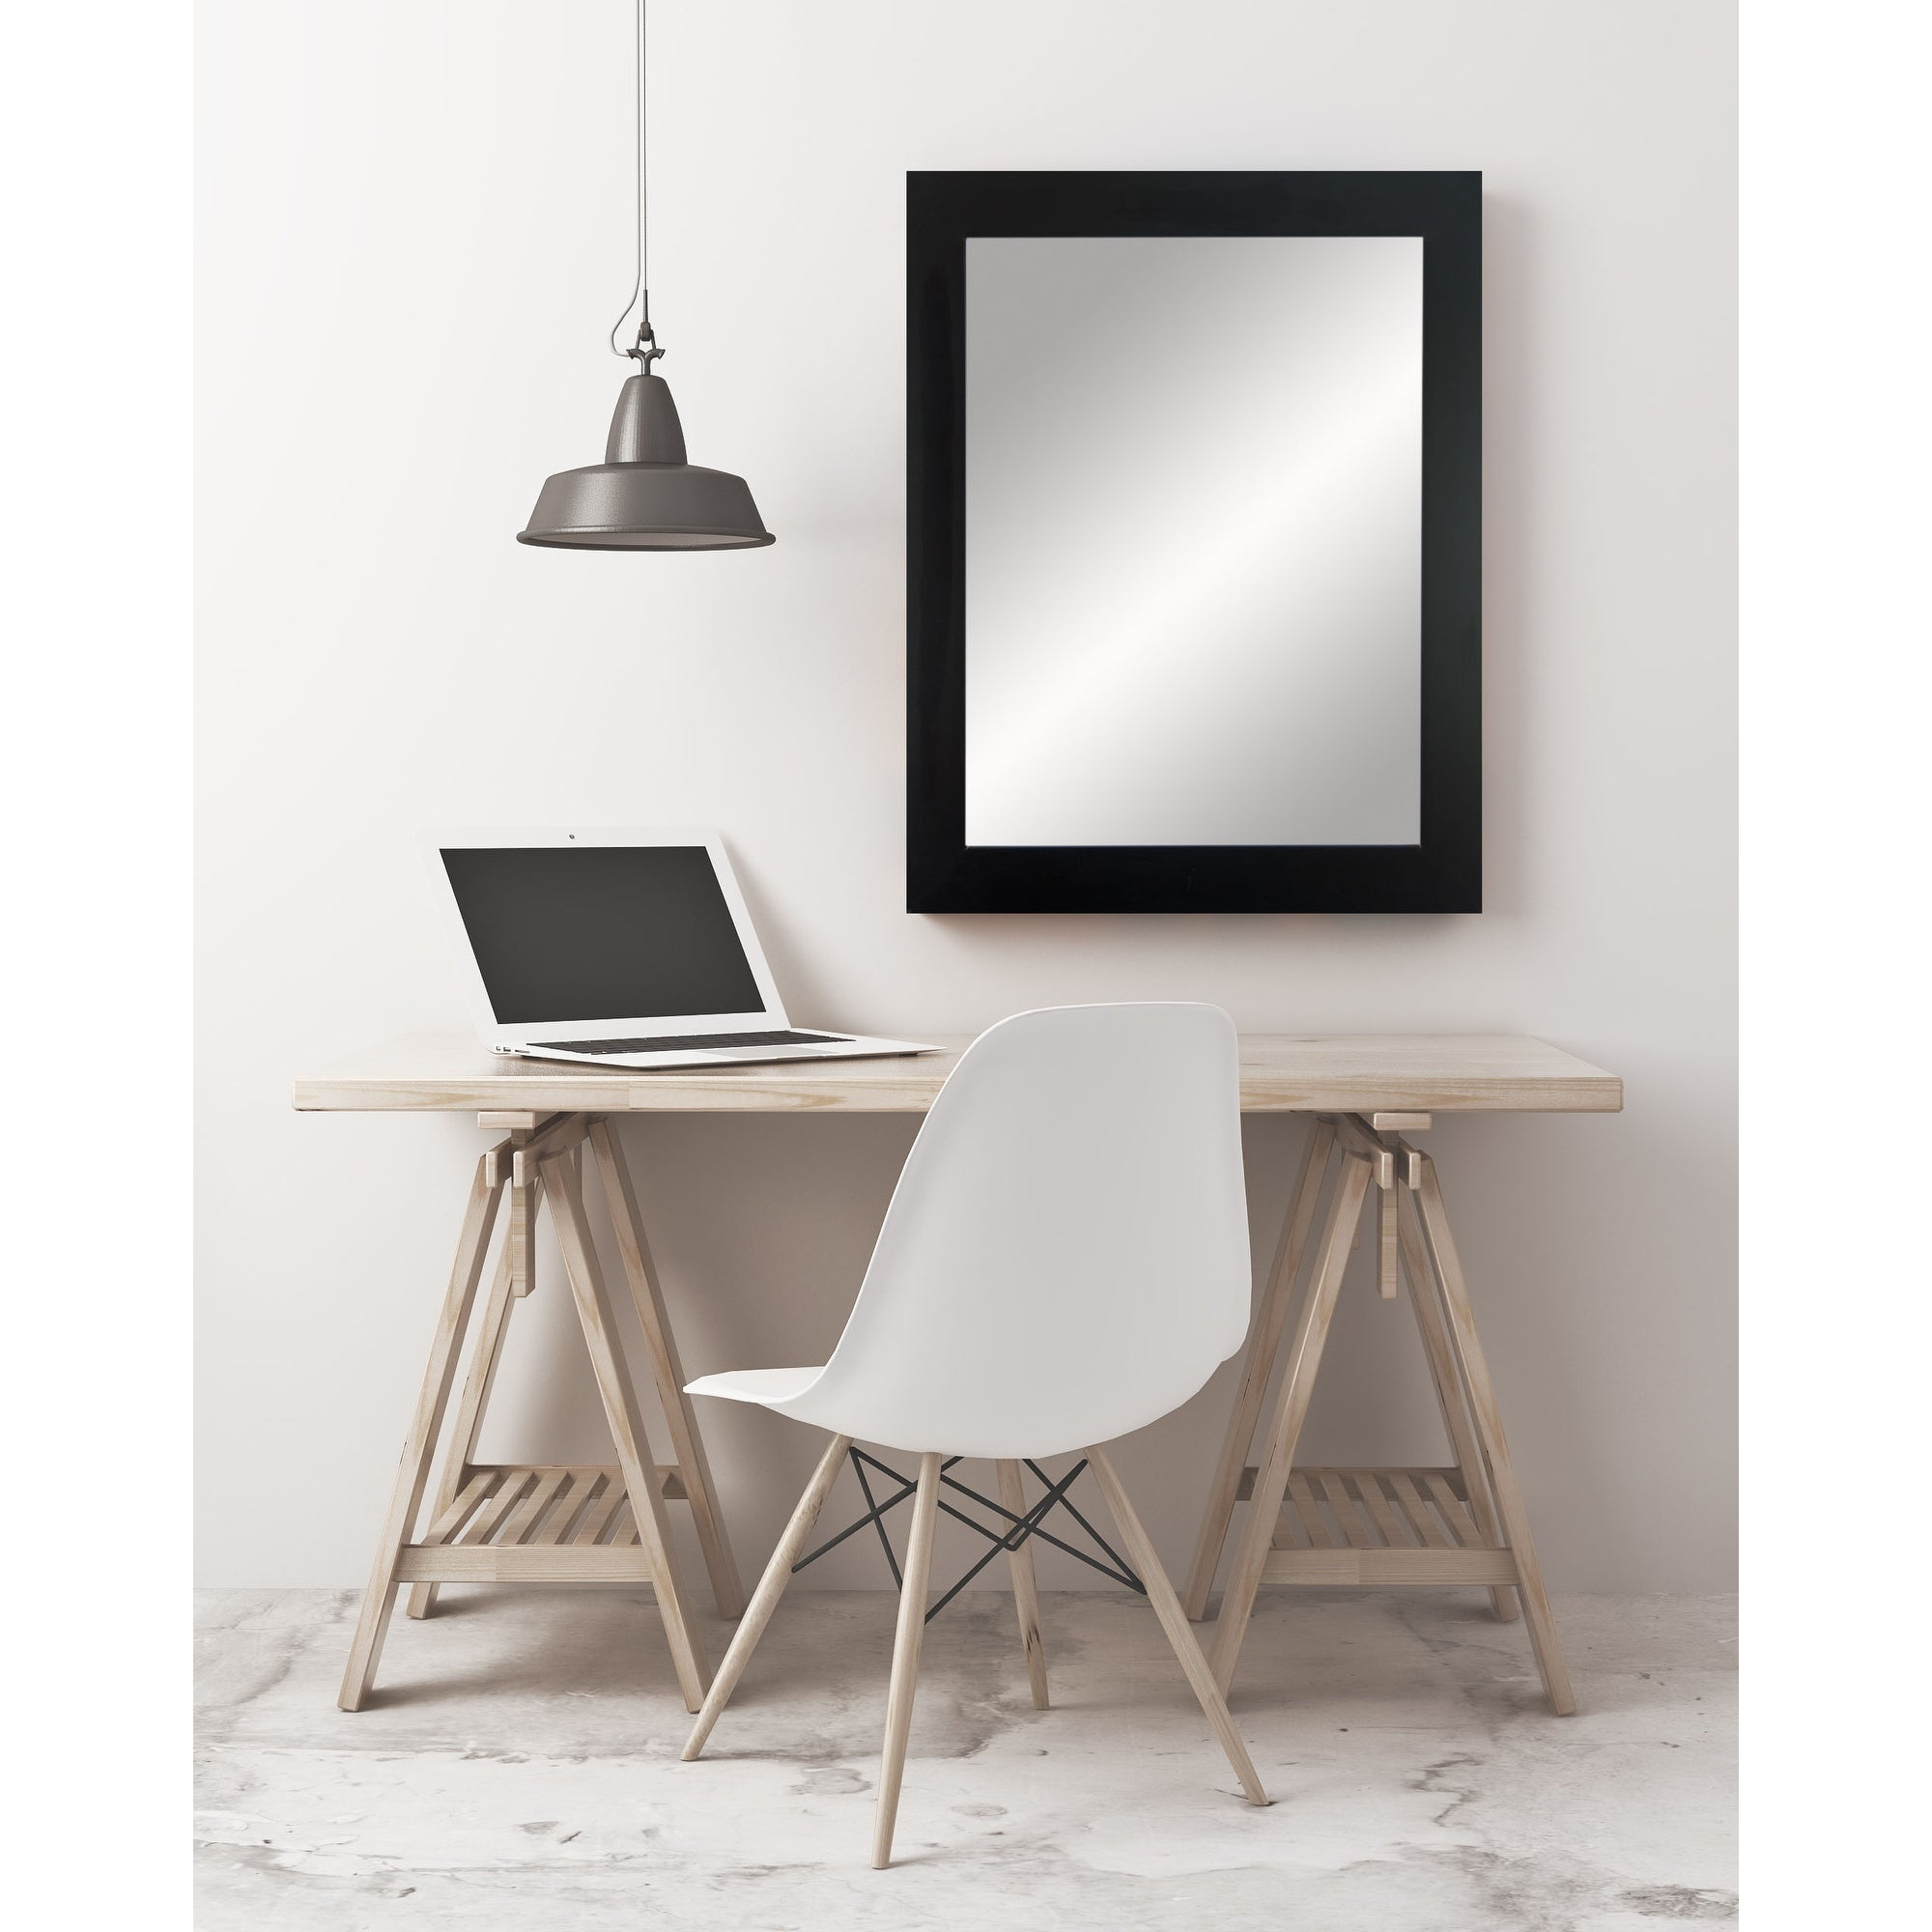 Favorite Black Framed Wall Mirrors Regarding Brandtworks Black Entry Way Framed Wall Mirror 32''x 36'' – Brushed – A (View 15 of 20)